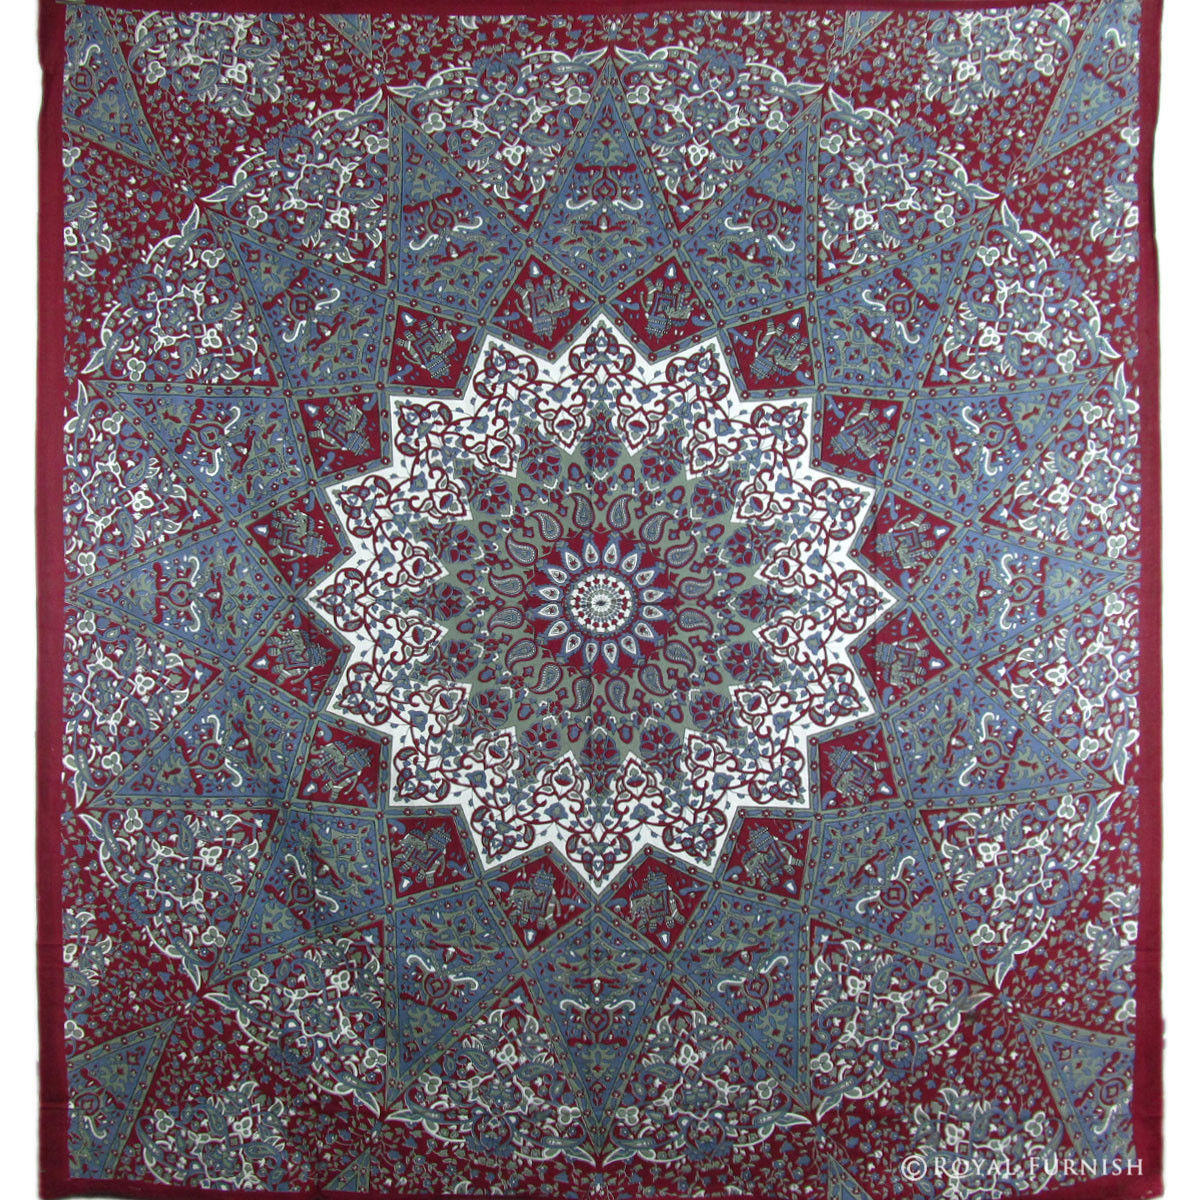 Indian Mandala Hippie Tapestry Throw Wall From Royal Furnish